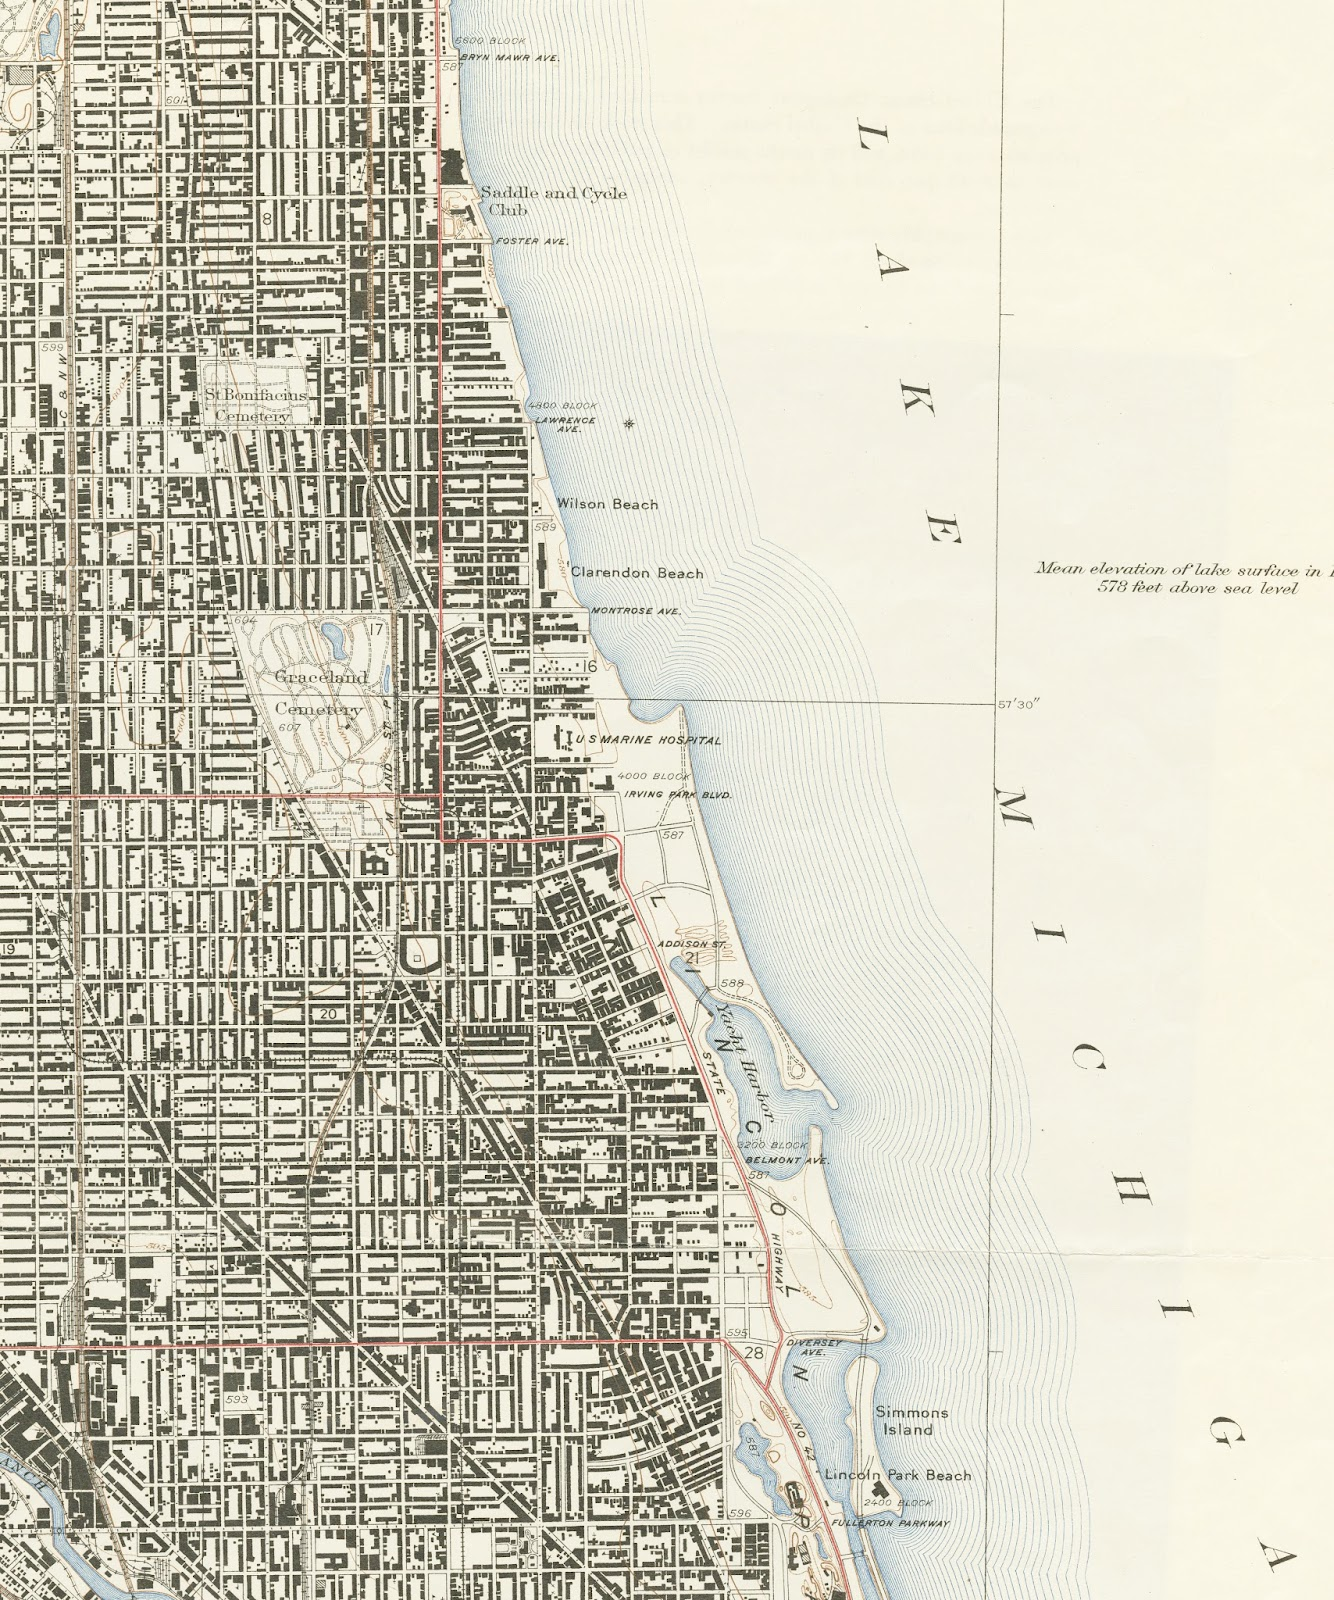 O Block Chicago Map.Gis Research And Map Collection Maps Of Chicago Available From Ball